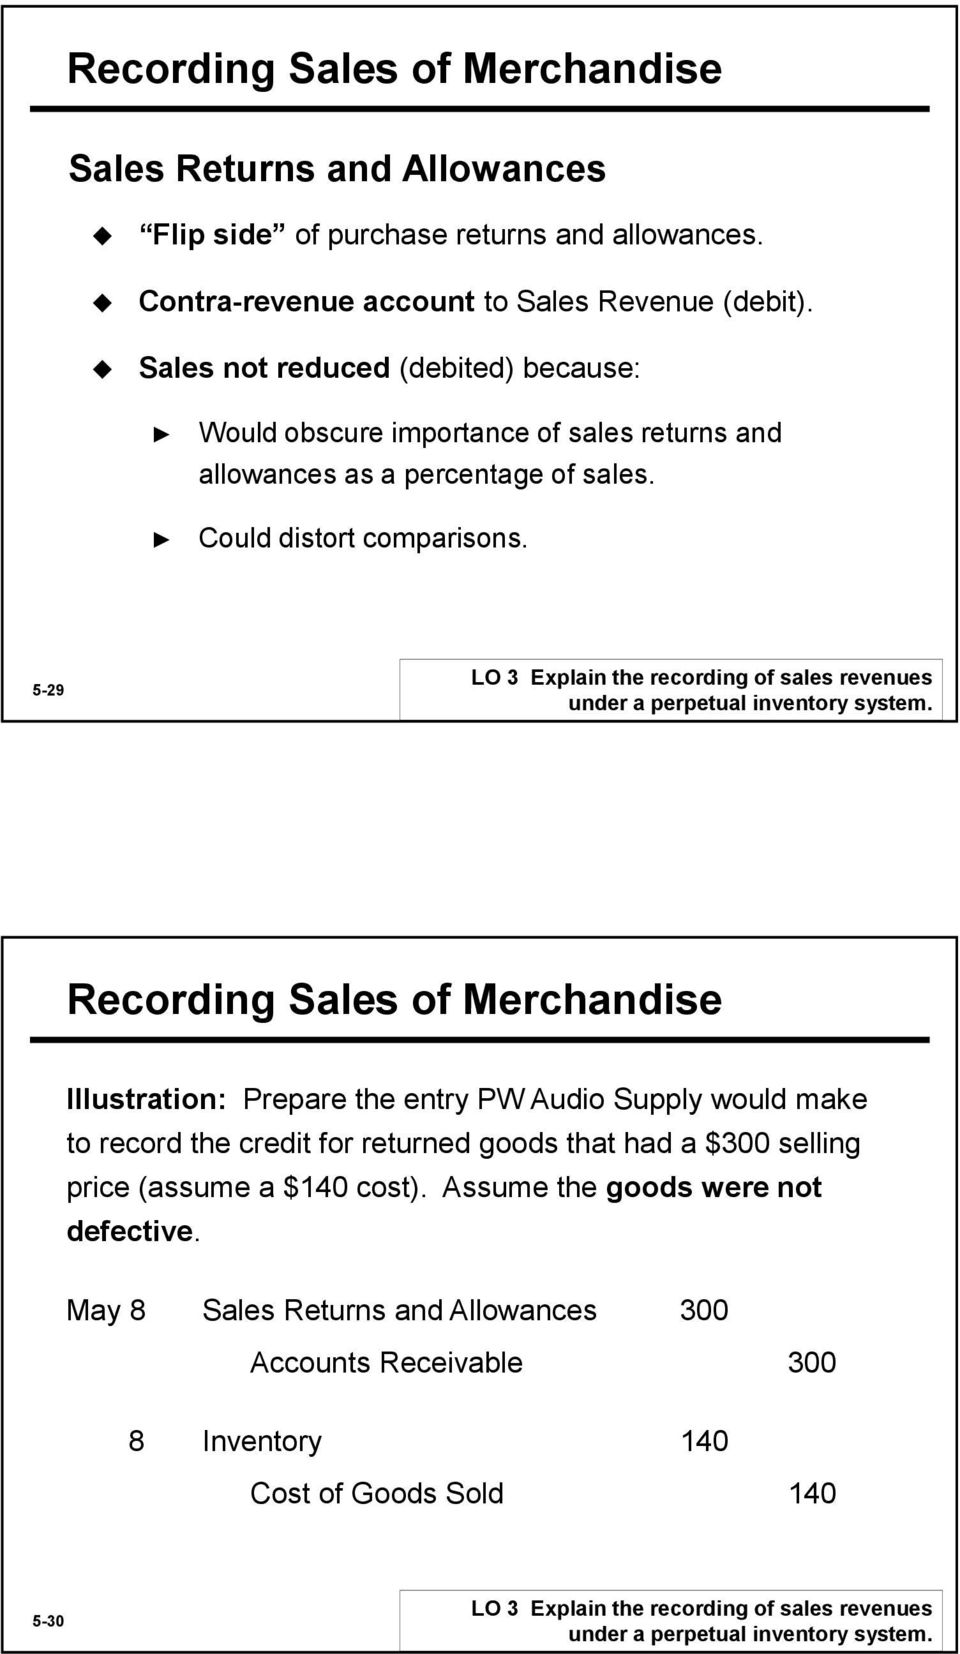 5-29 LO 3 Explain the recording of sales revenues under a perpetual inventory system.